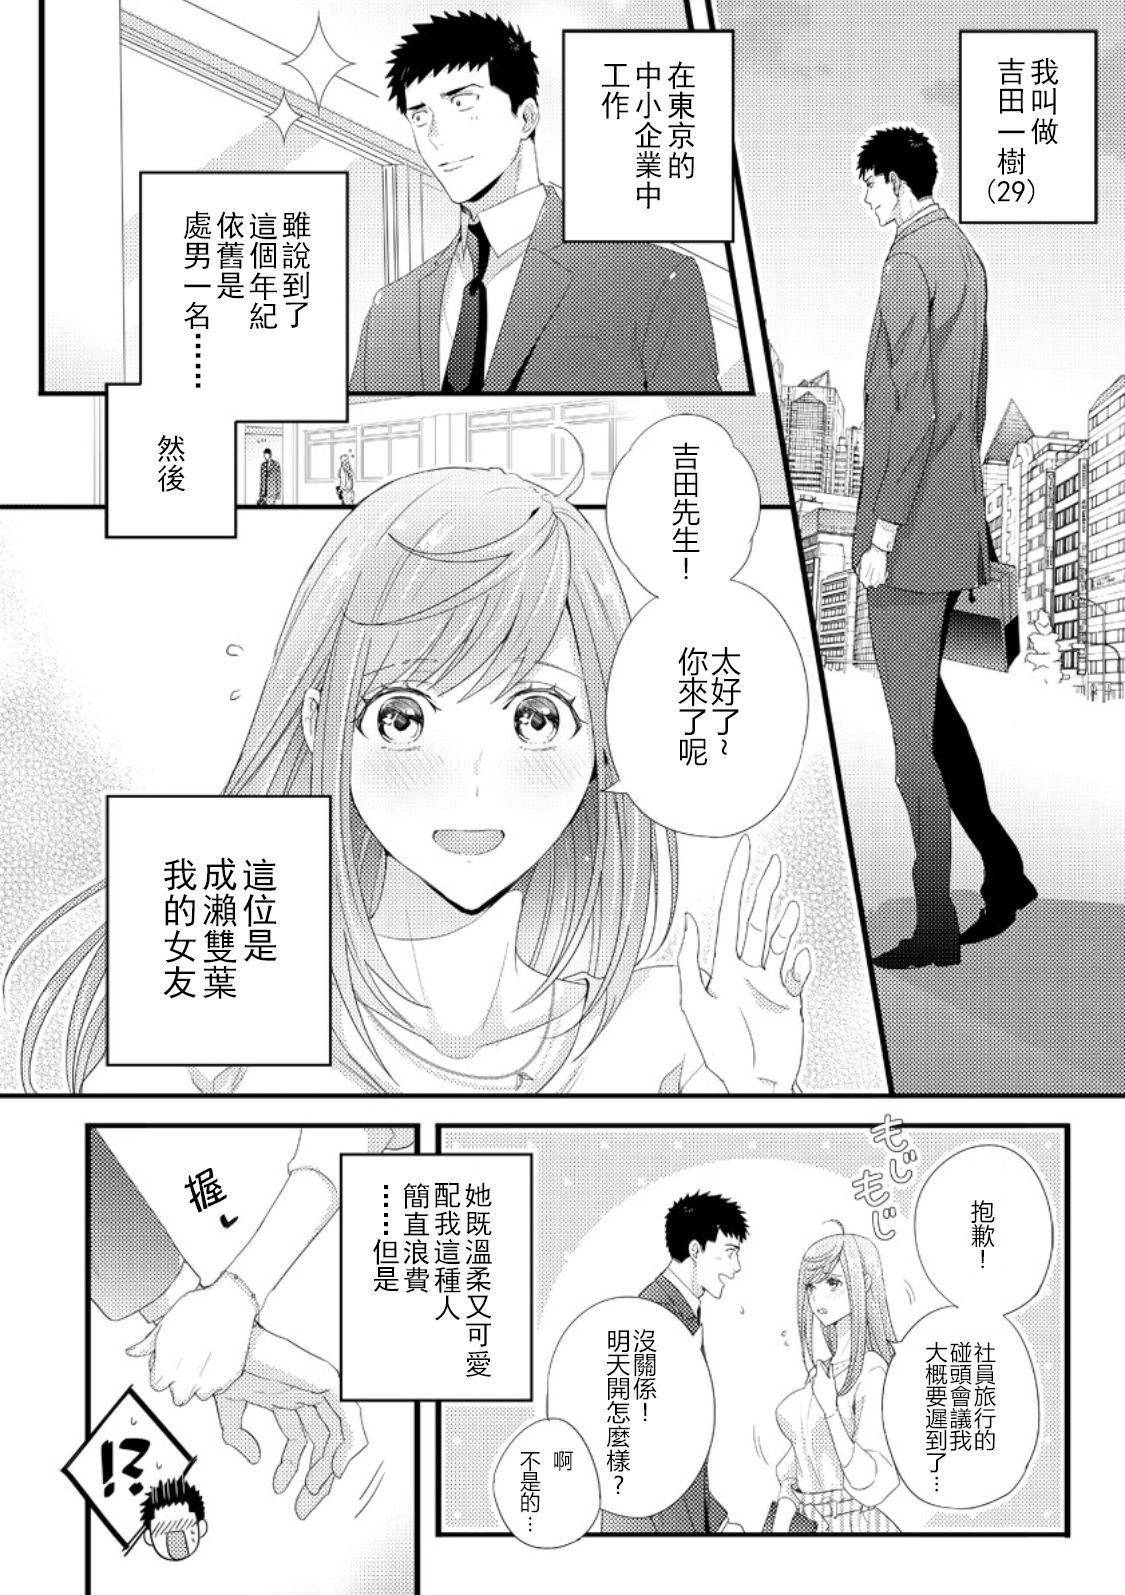 Please Let Me Hold You Futaba-San! Ch.1 1